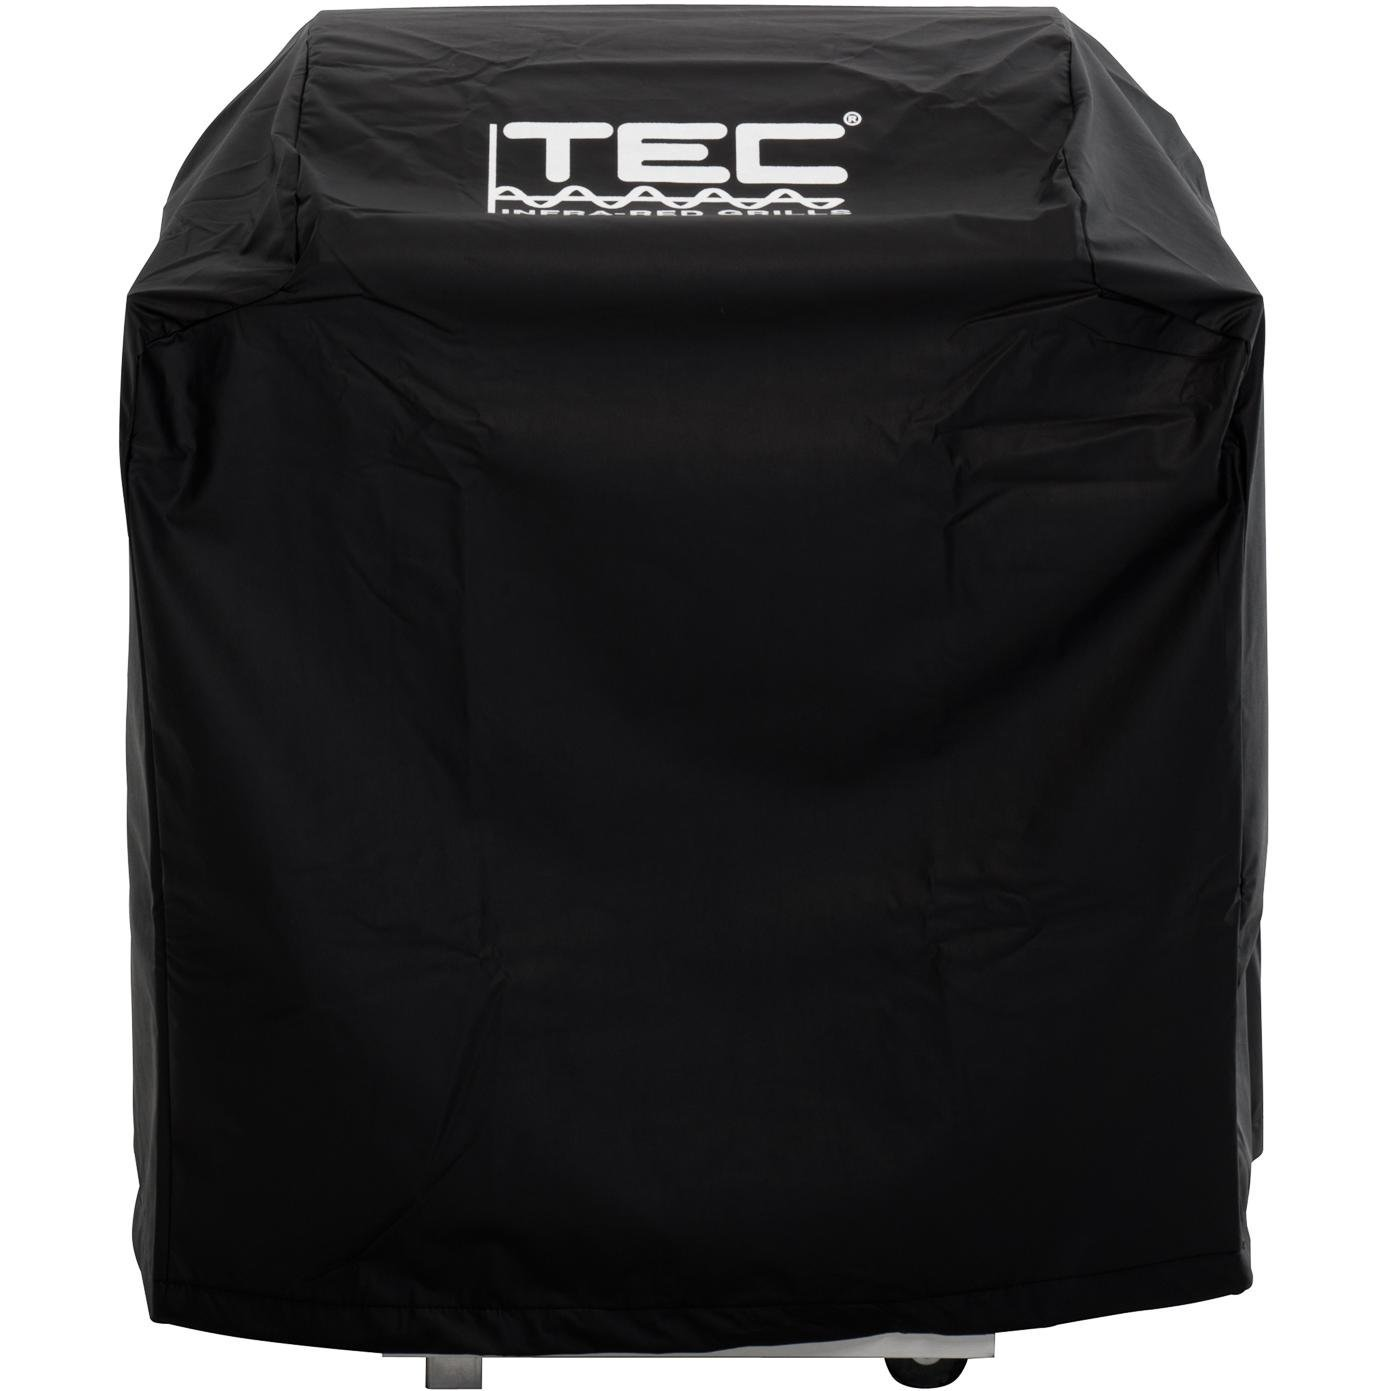 Tec Vinyl Grill Cover For Sterling Iii - On Cart With Two Side Shelves